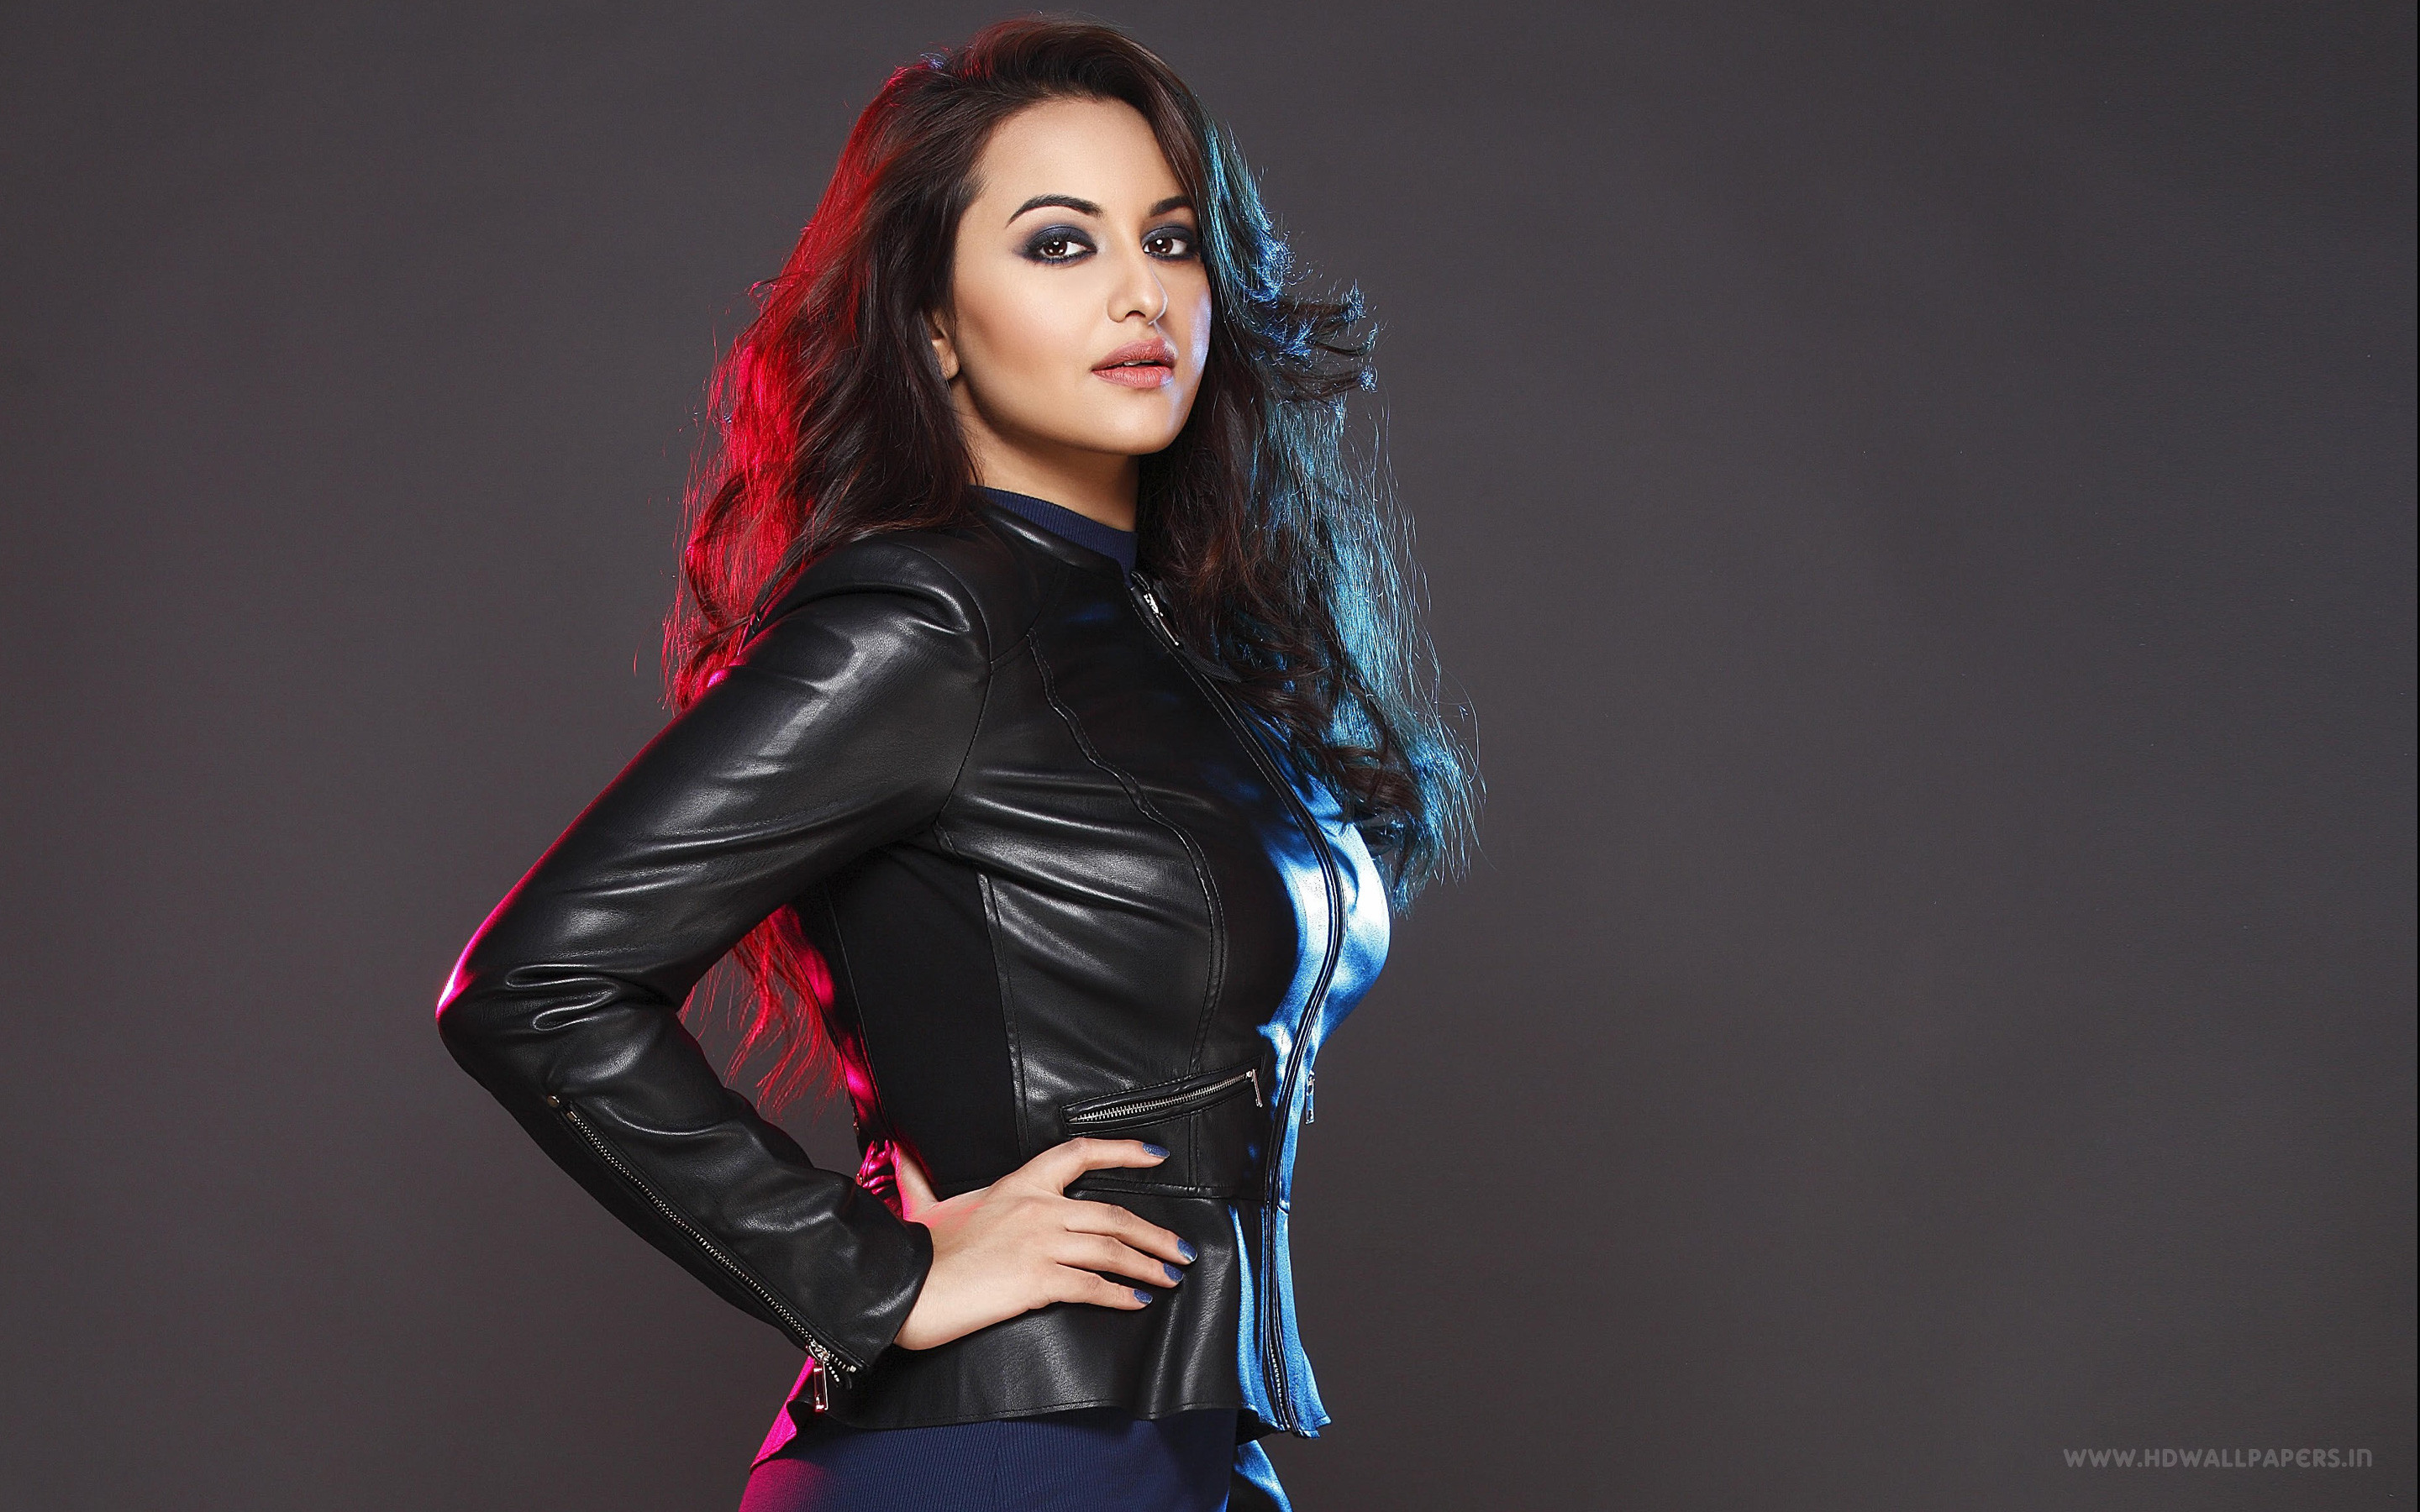 Wallpaper Of Sonakshi Sinha: Latest Bollywood Actress Wallpapers 2018 HD (74+ Images